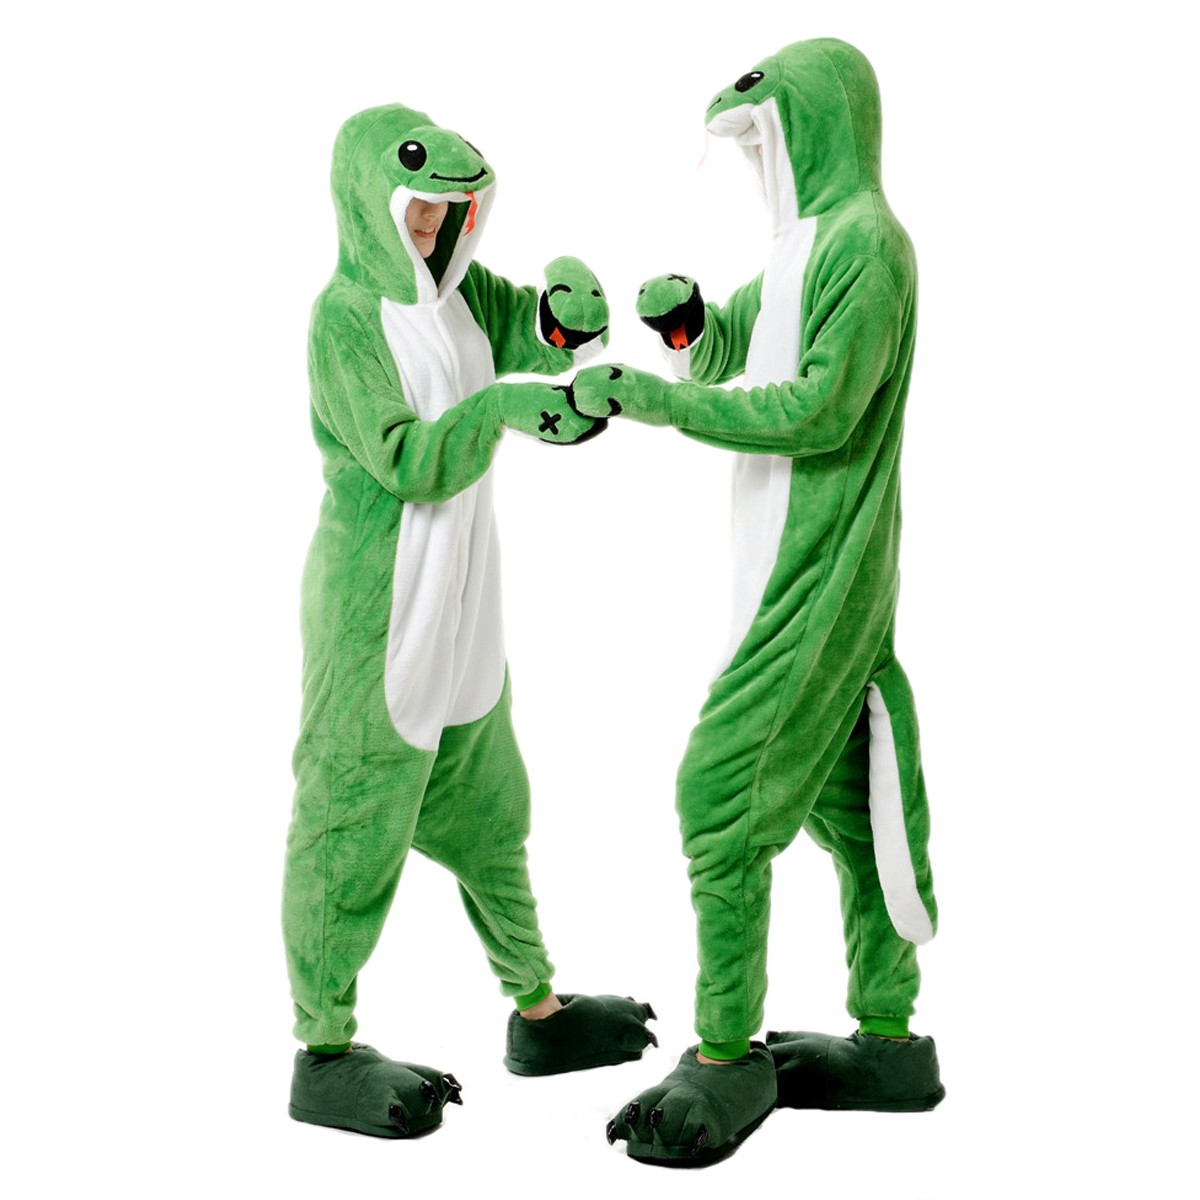 e5c7c8a4f195 Frog Onesie for Adult Animal Kigurumi Pajama Party Costumes